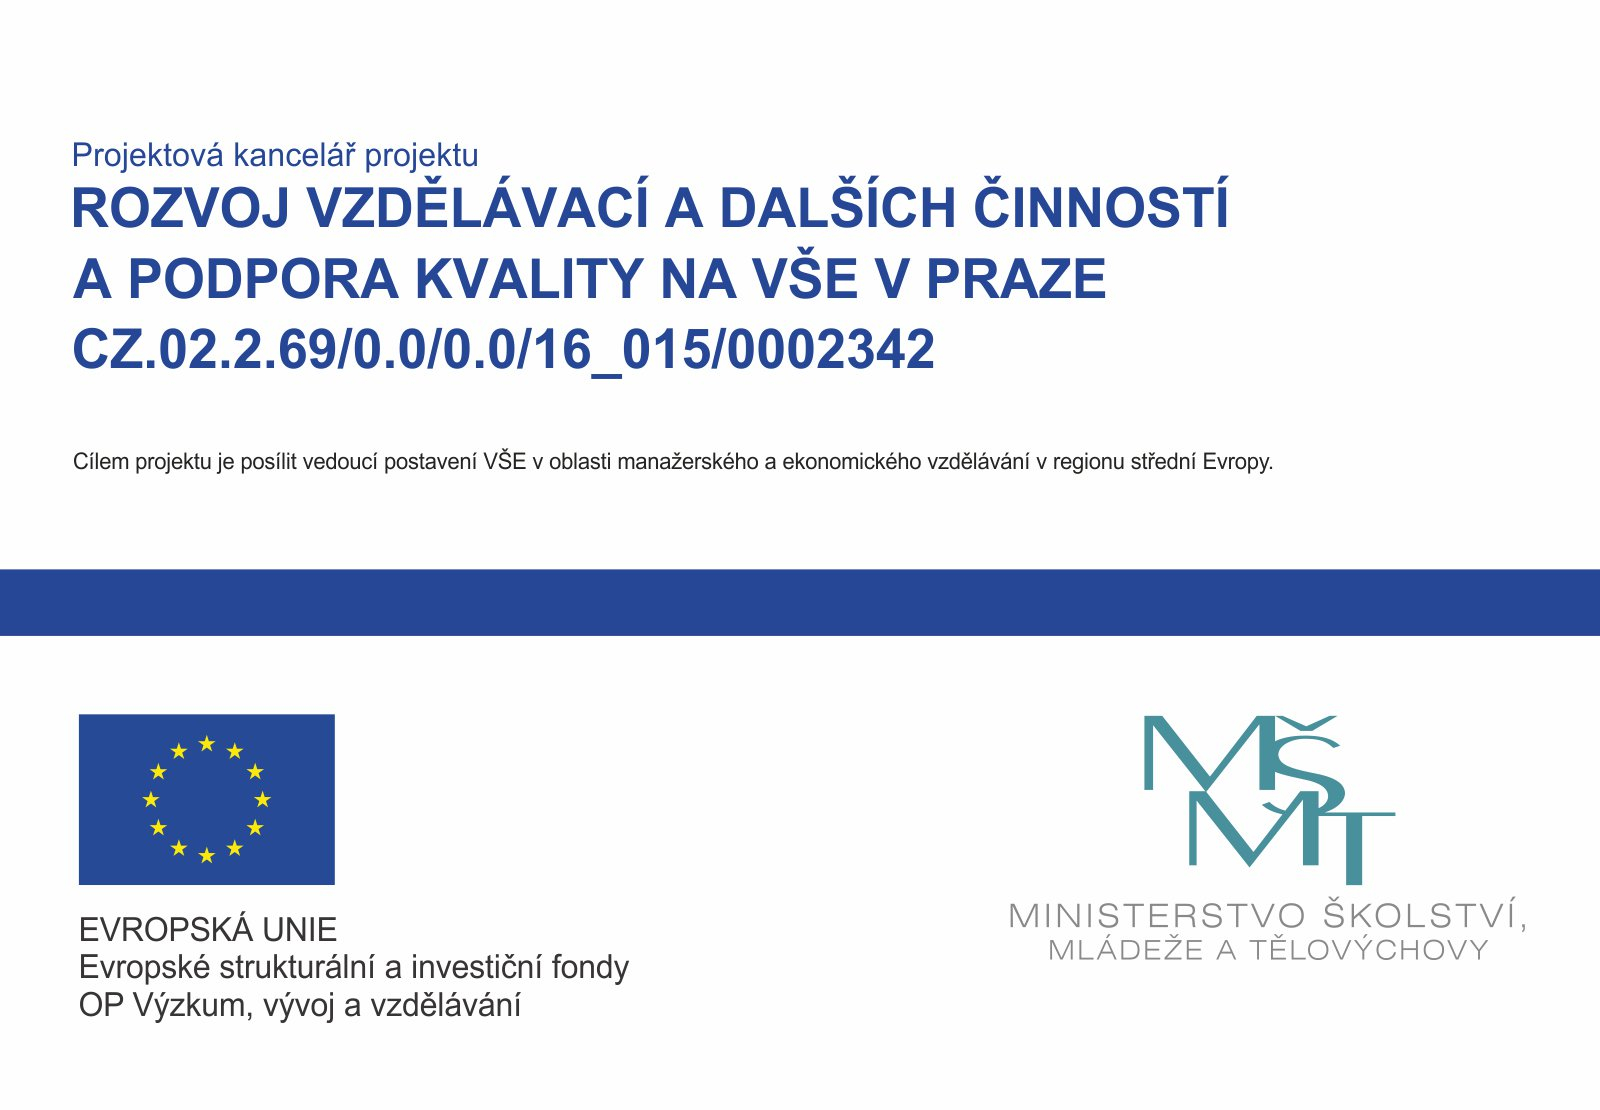 Development of educational and other activities and quality support at the University of Economics in Prague